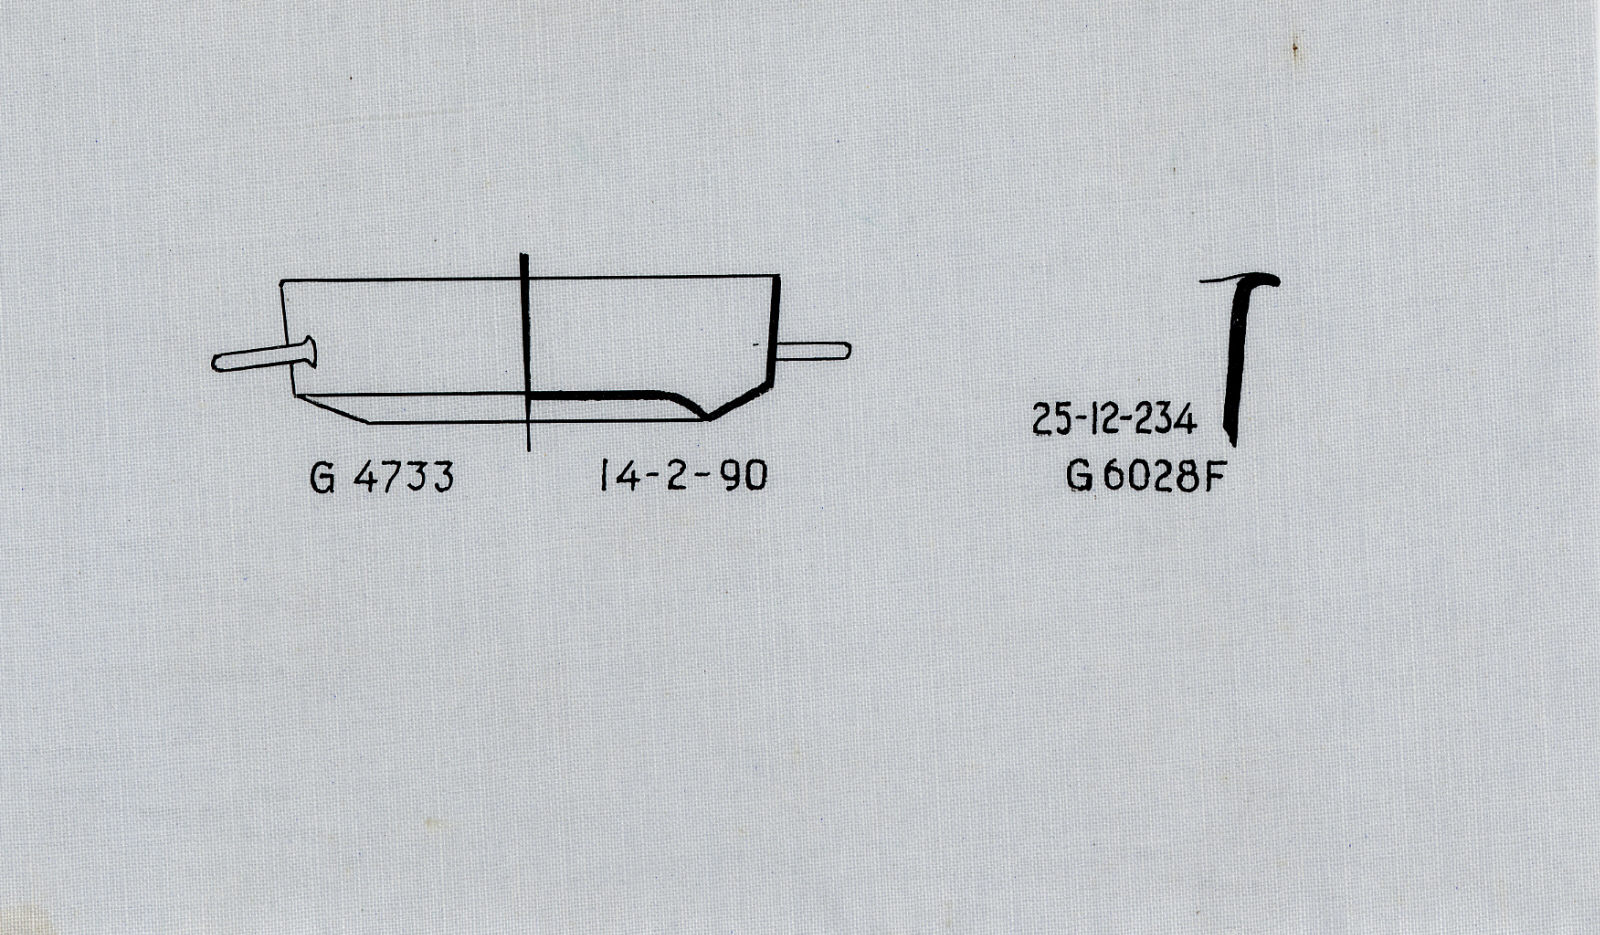 Drawings: Objects, copper and bronze, from G 4733, Shaft E and G 6028, Shaft F